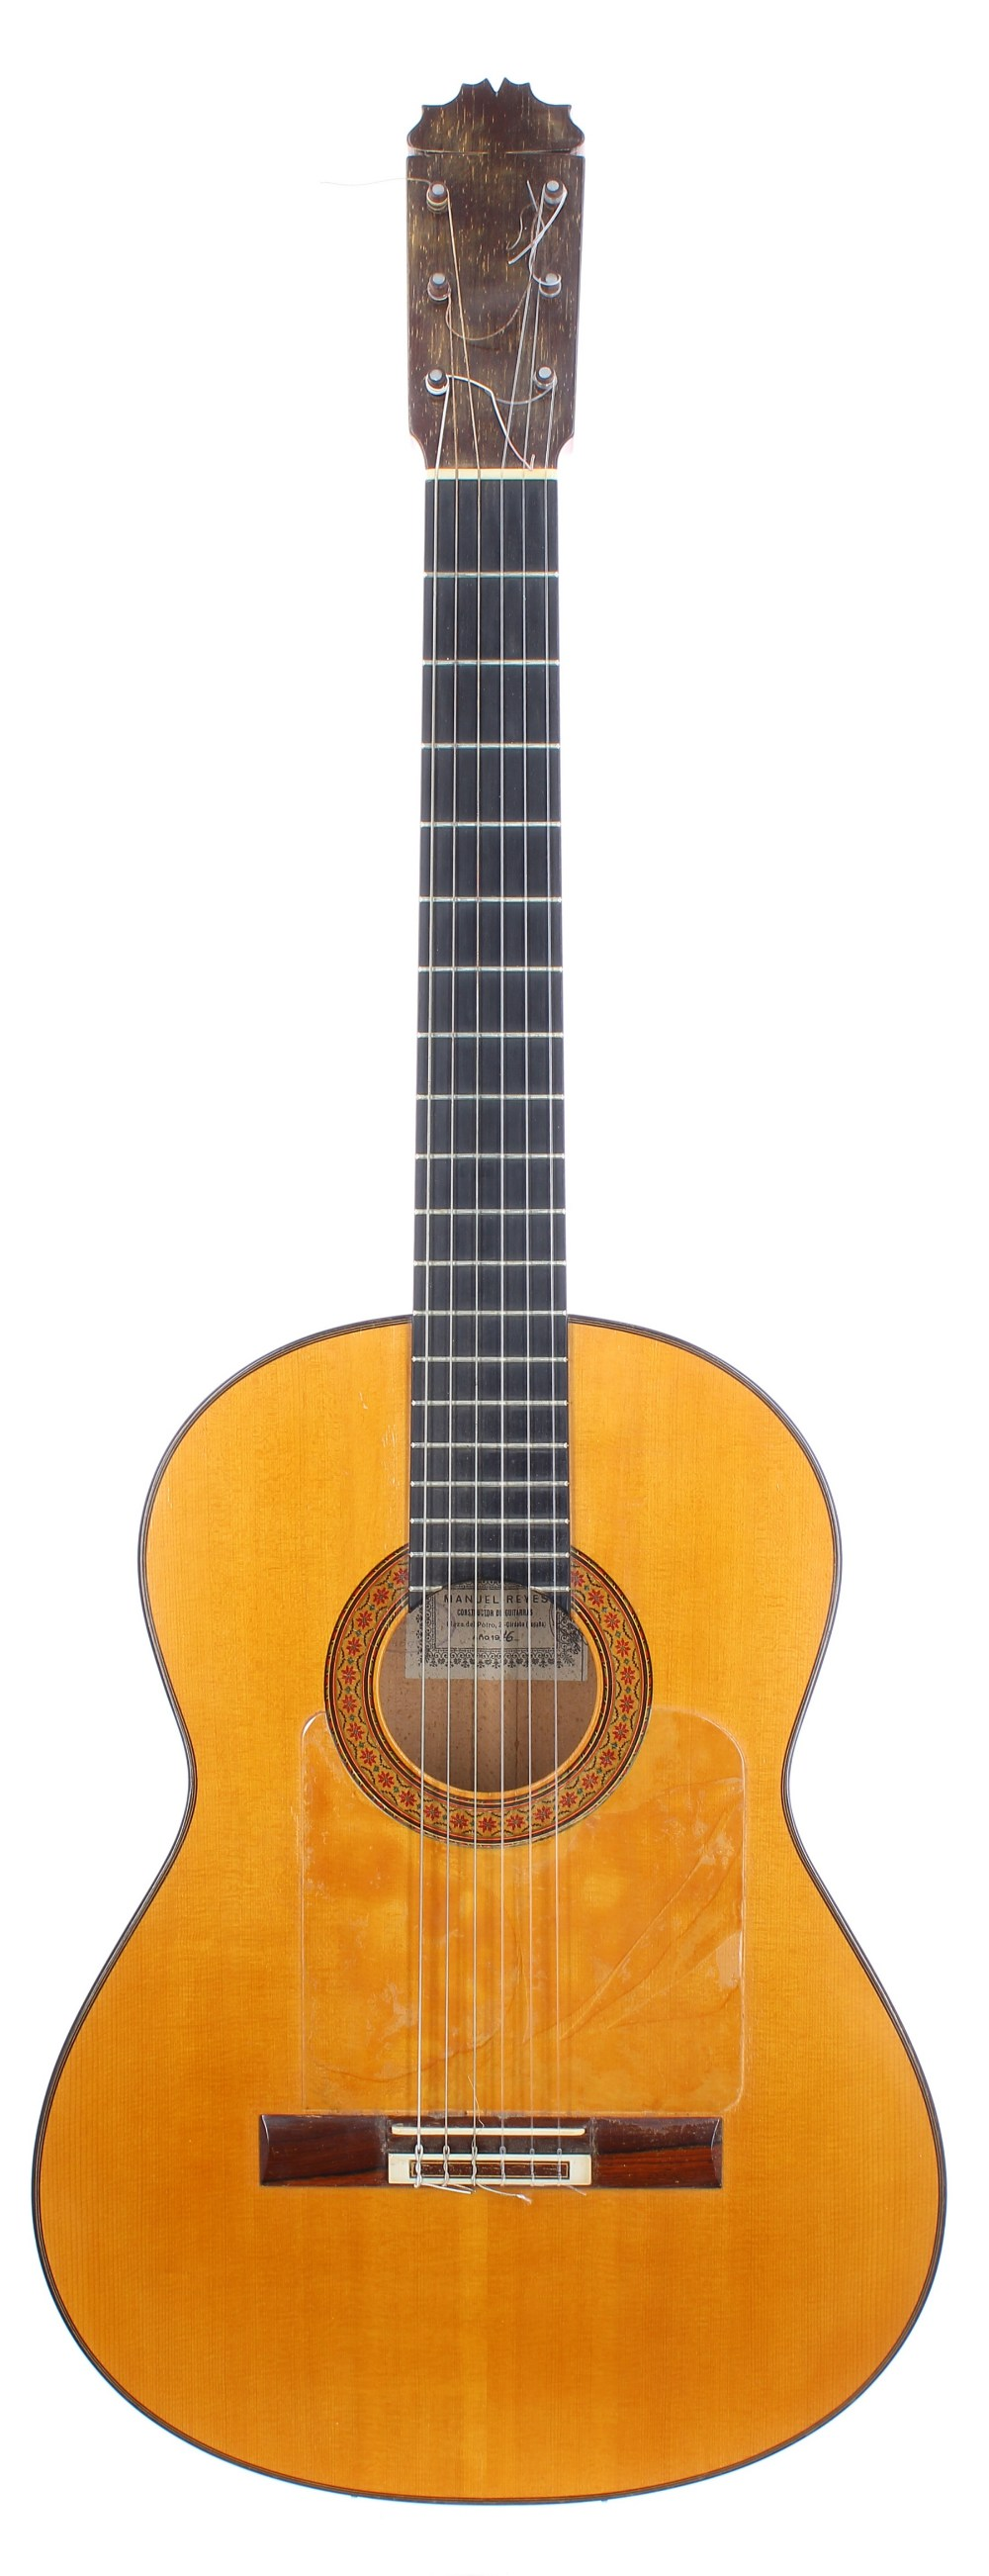 1976 Manuel Reyes Flamenco guitar, made in Cordoba, Spain; Back and sides: cypress; Top: spruce with